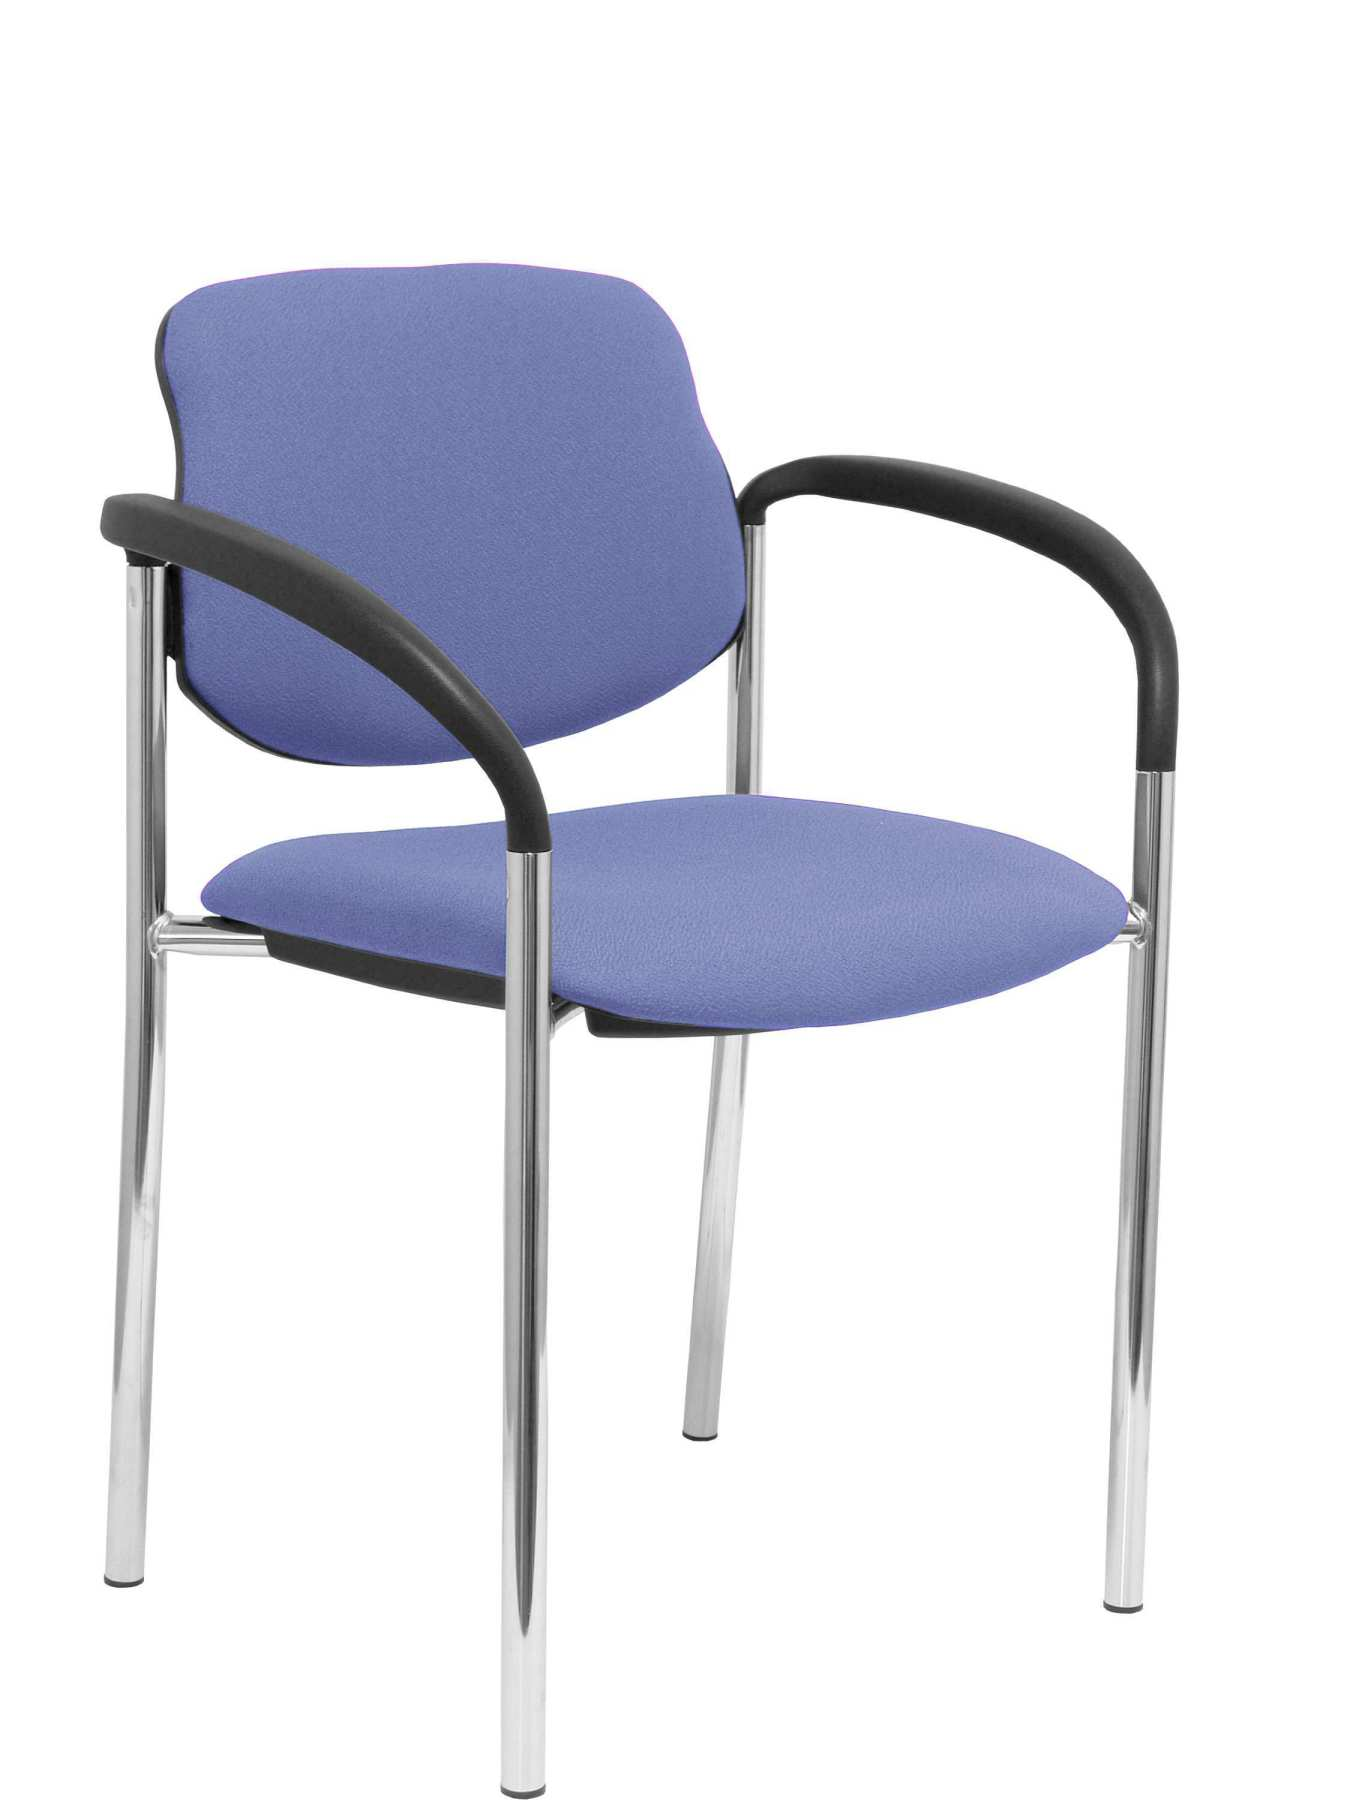 Confident Chair 4 leg and estructrua chrome arms Seat and back upholstered in fabric BALI blue color cla|  - title=